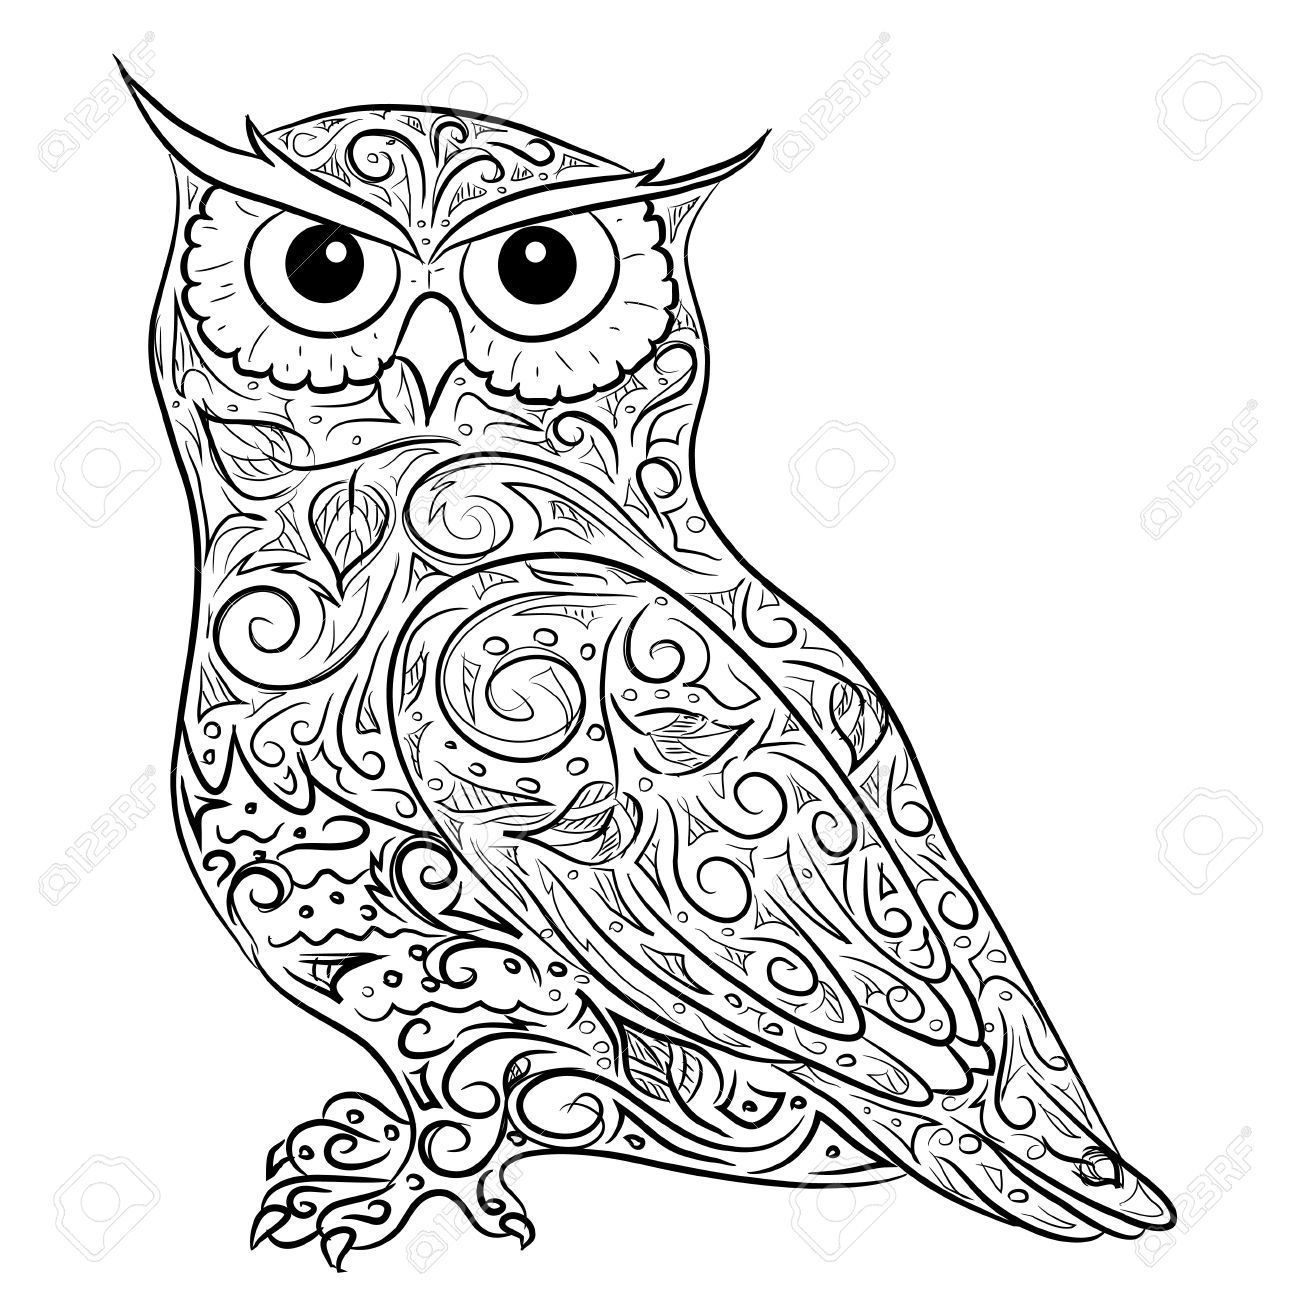 1300x1300 Hand Drawing Owl Royalty Free Cliparts, Vectors, And Stock